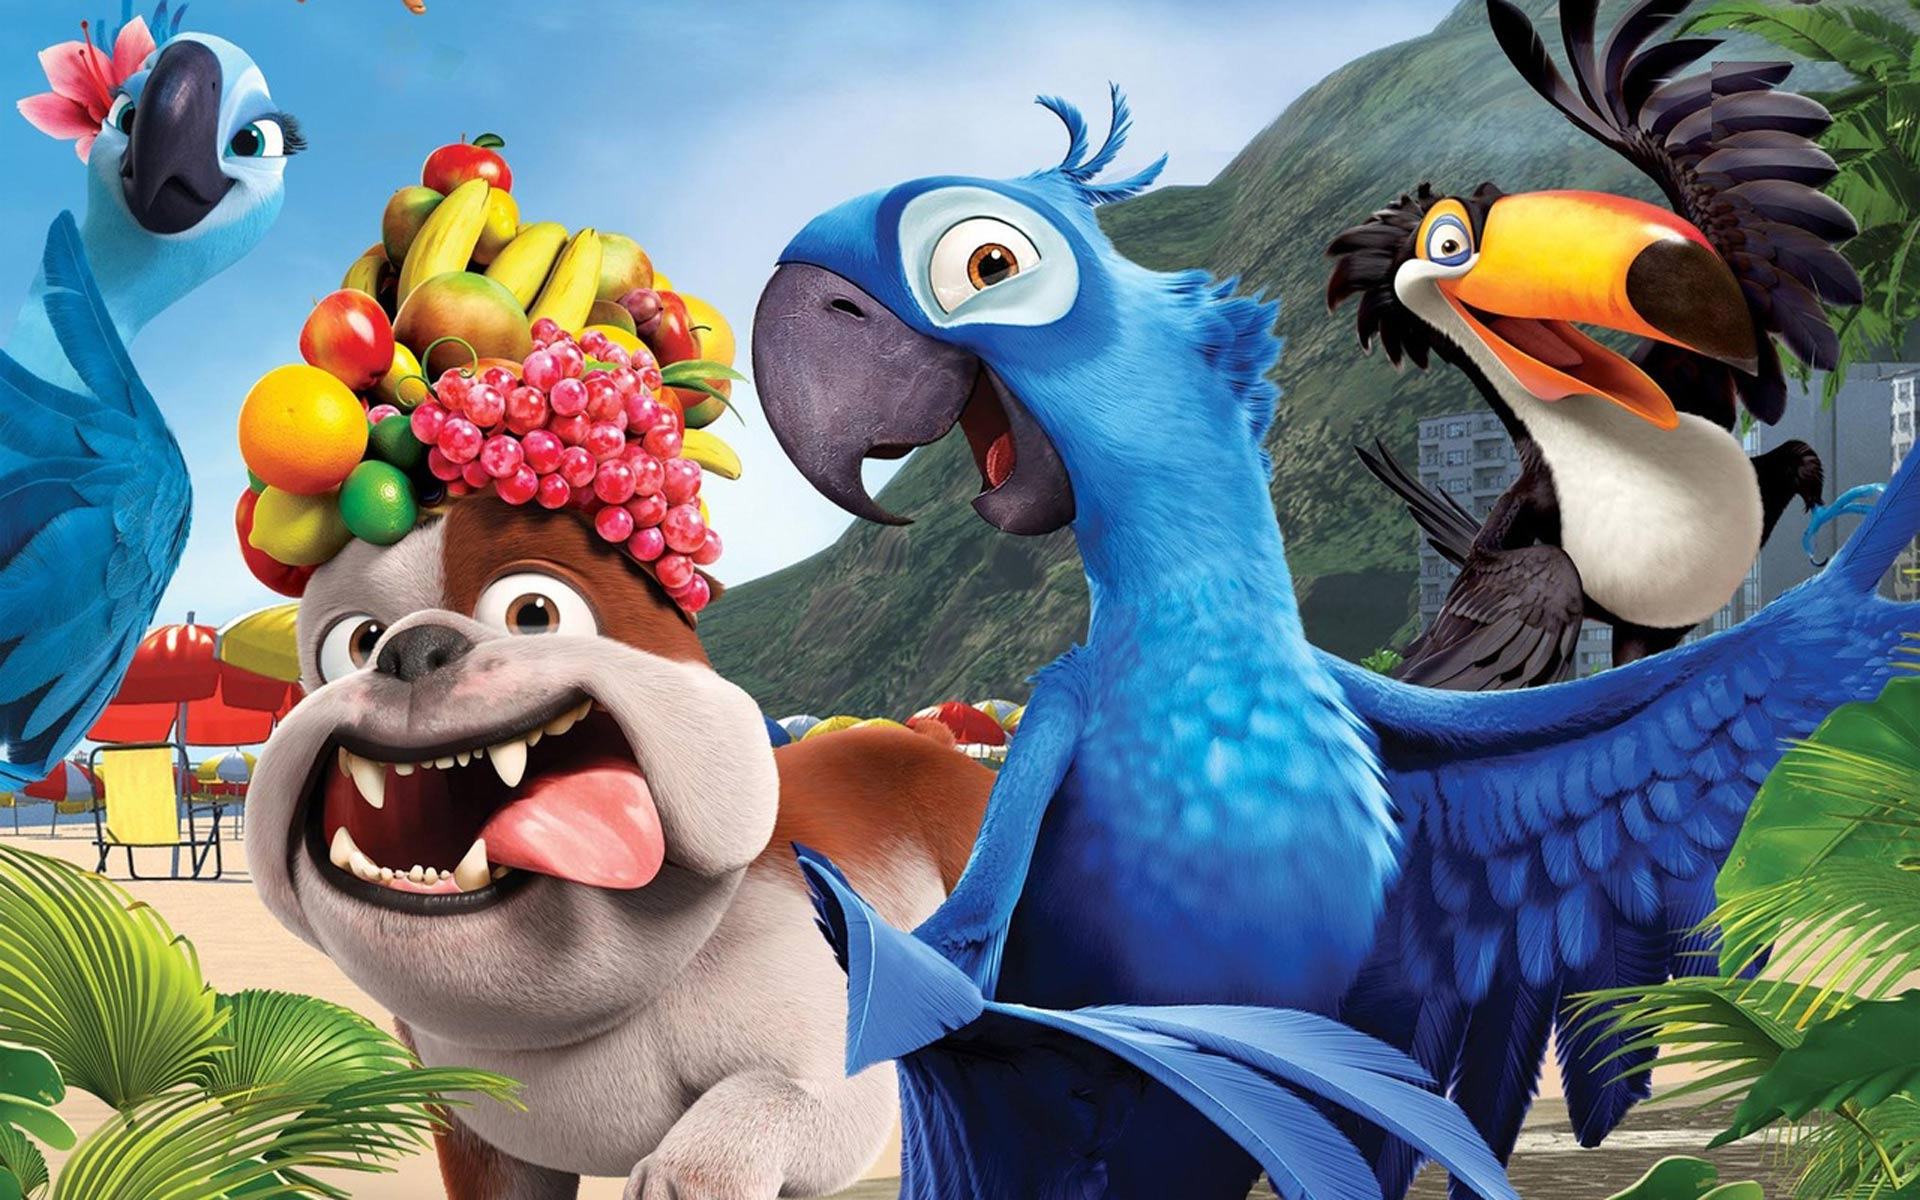 new Rio 2 movie HD Wallpapers 20+ Amazing New RIO 2 Wallpapers HD & Rio